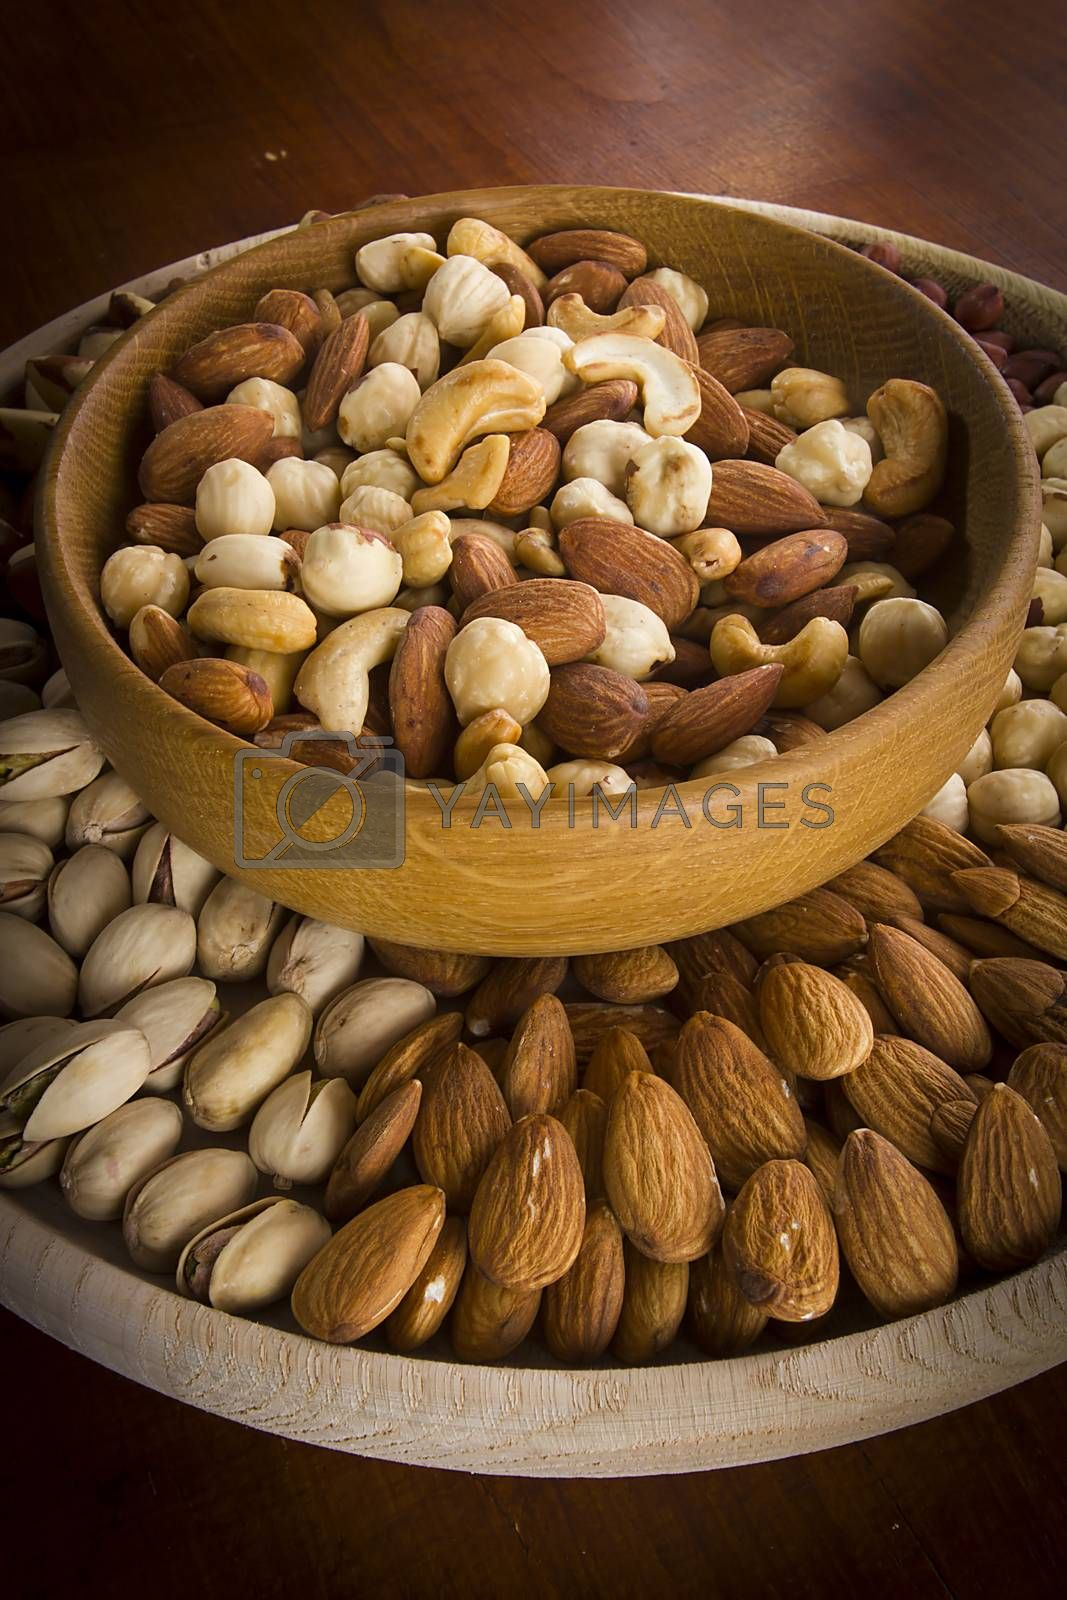 Set of various nuts in a wooden bowl